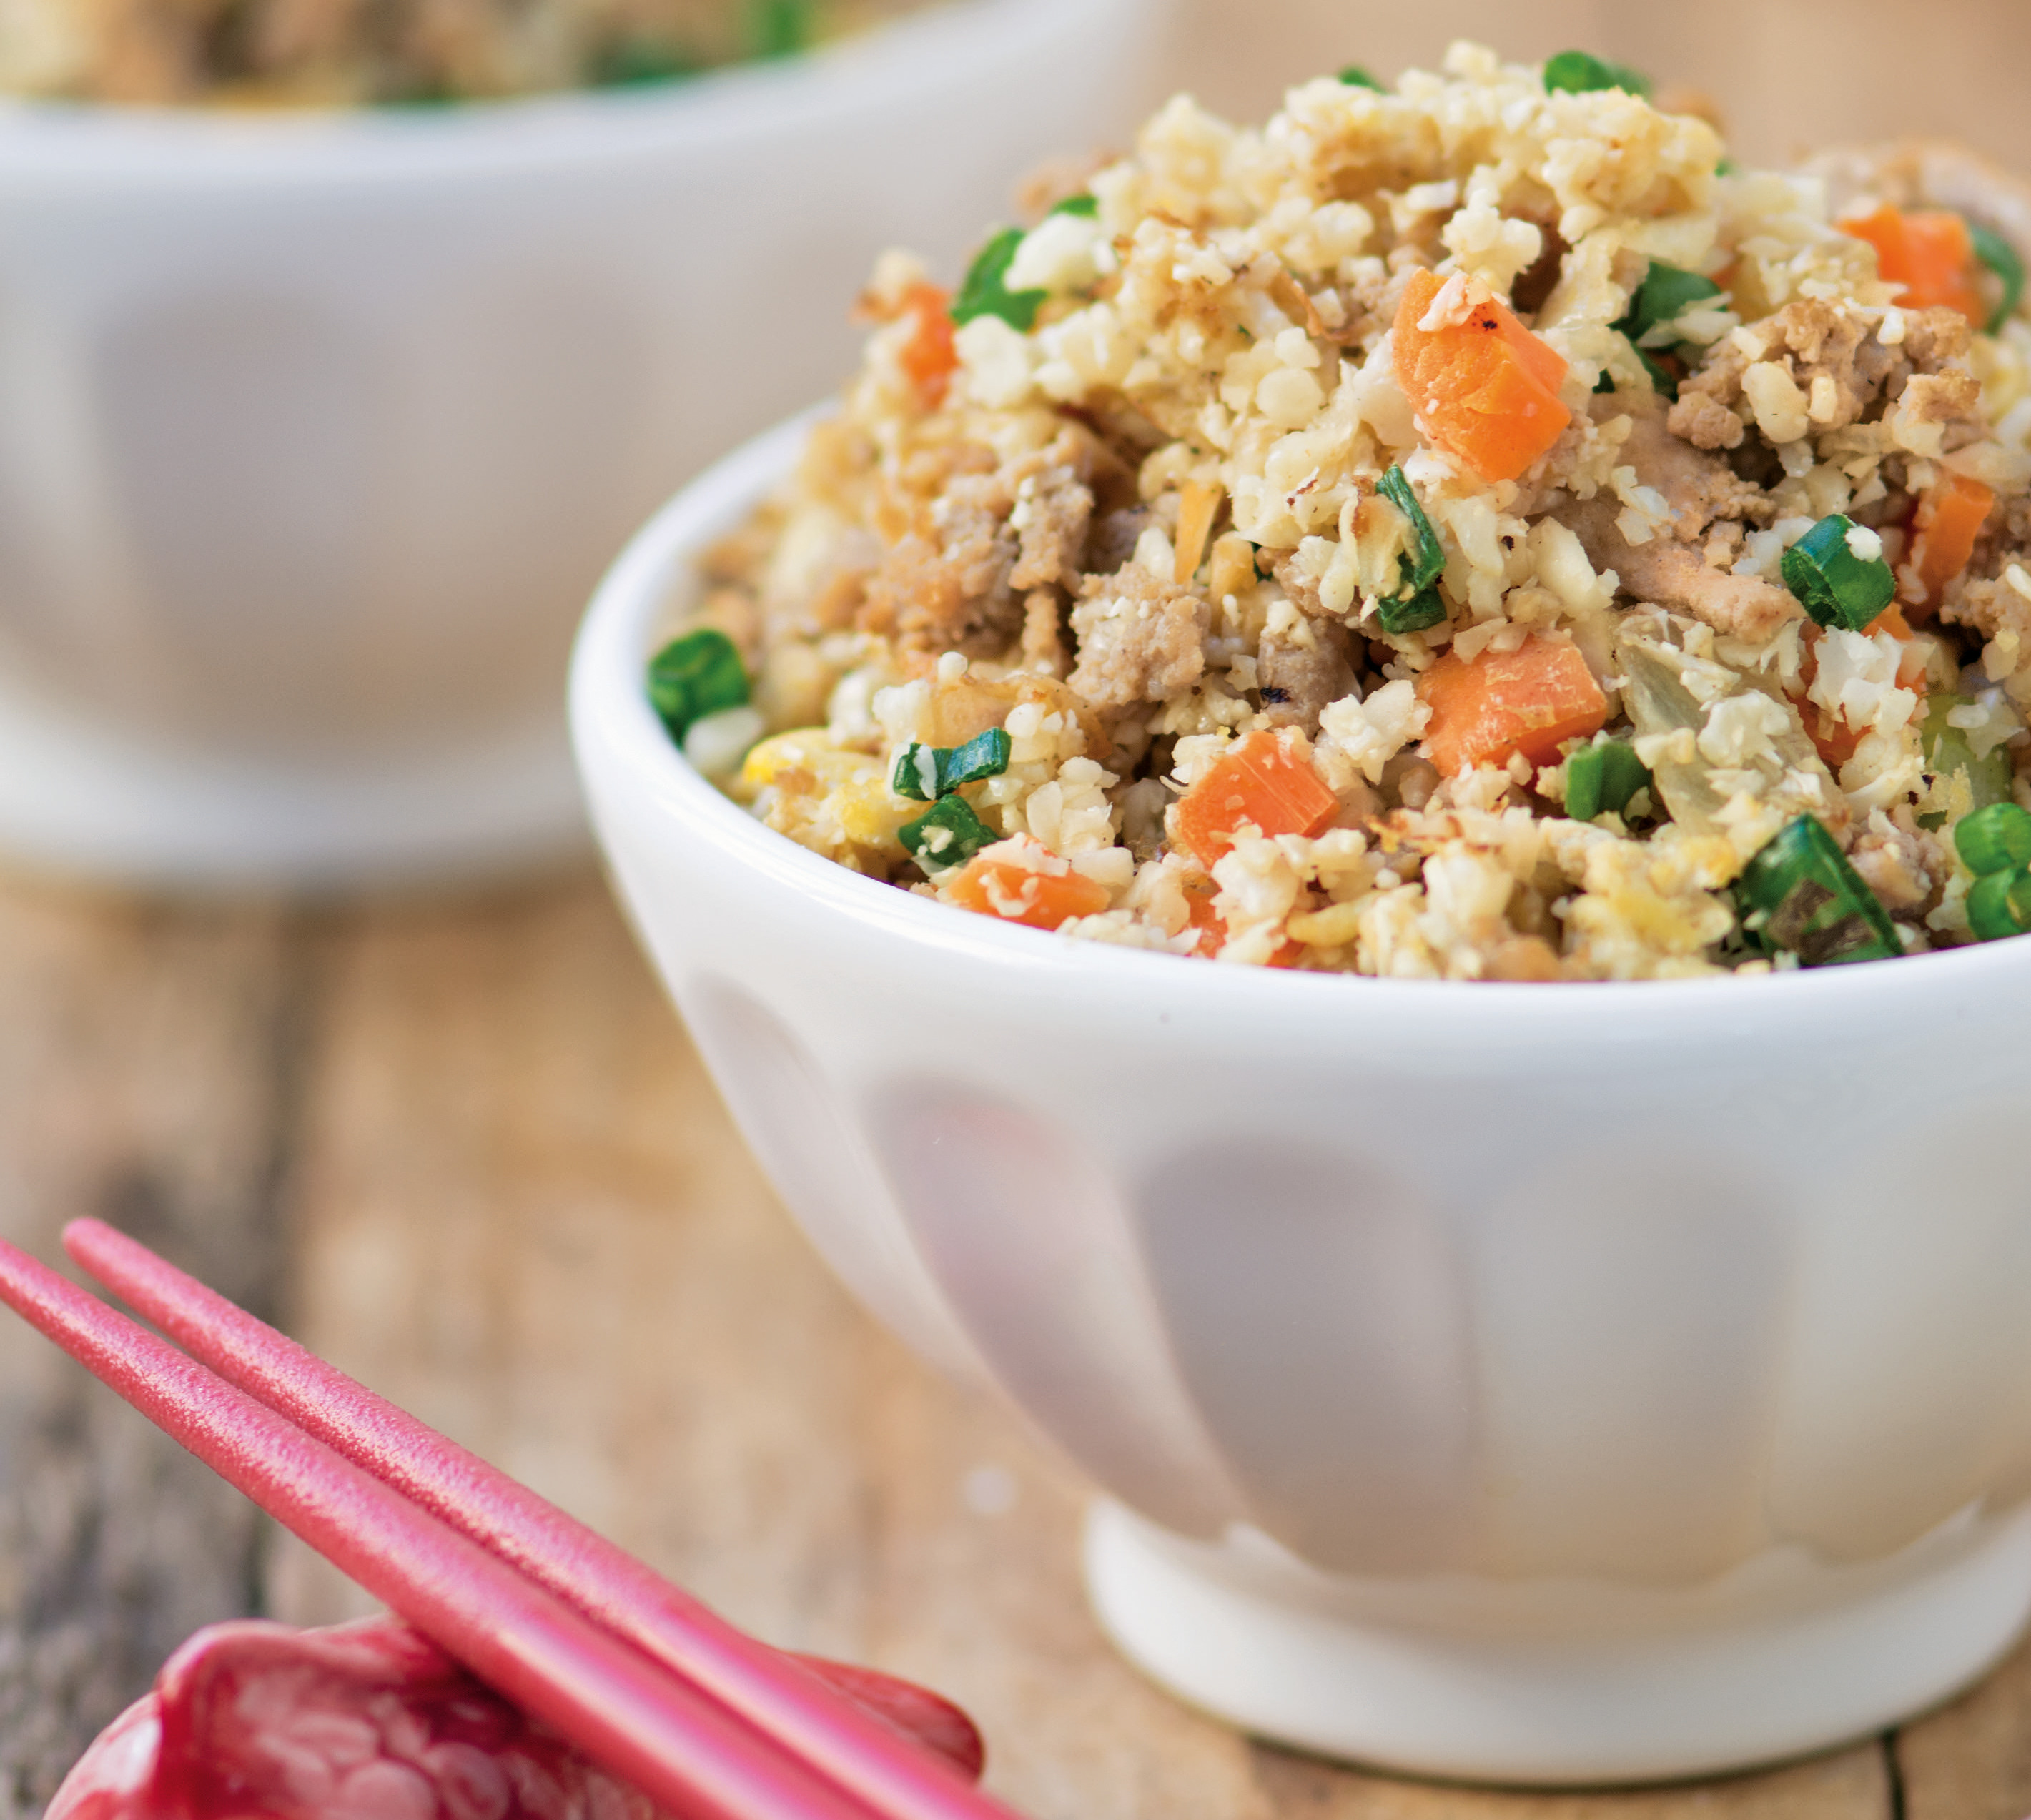 Cauliflower Pork Fried Rice (from One Pot Paleo)